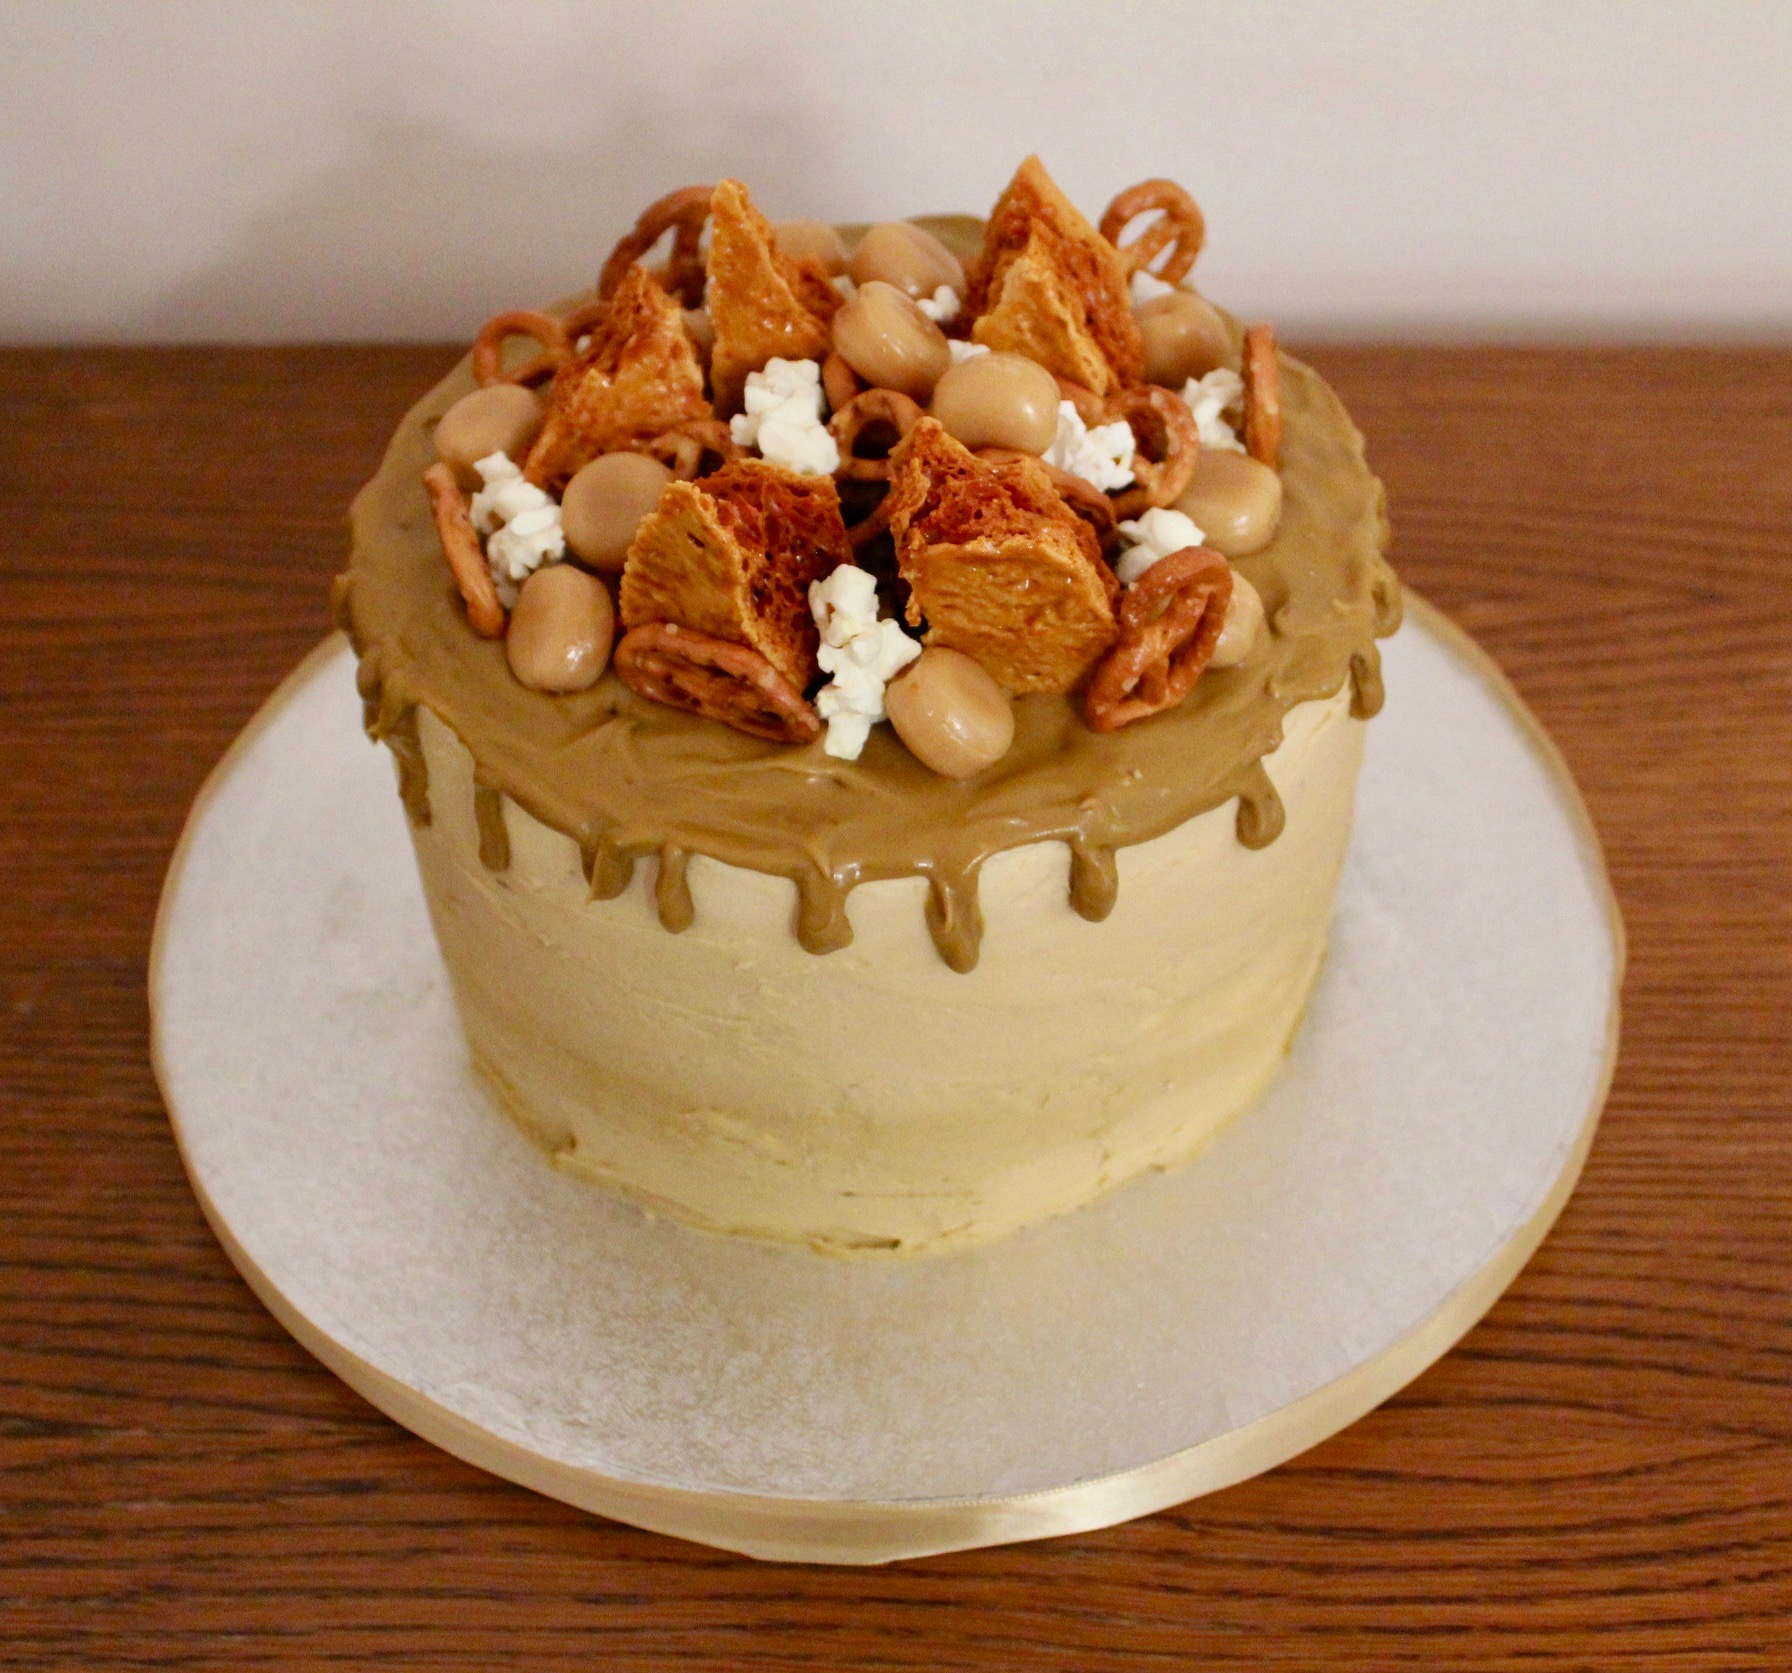 Caramel galore drip cake with honeycomb, popcorn, toffee and pretzels